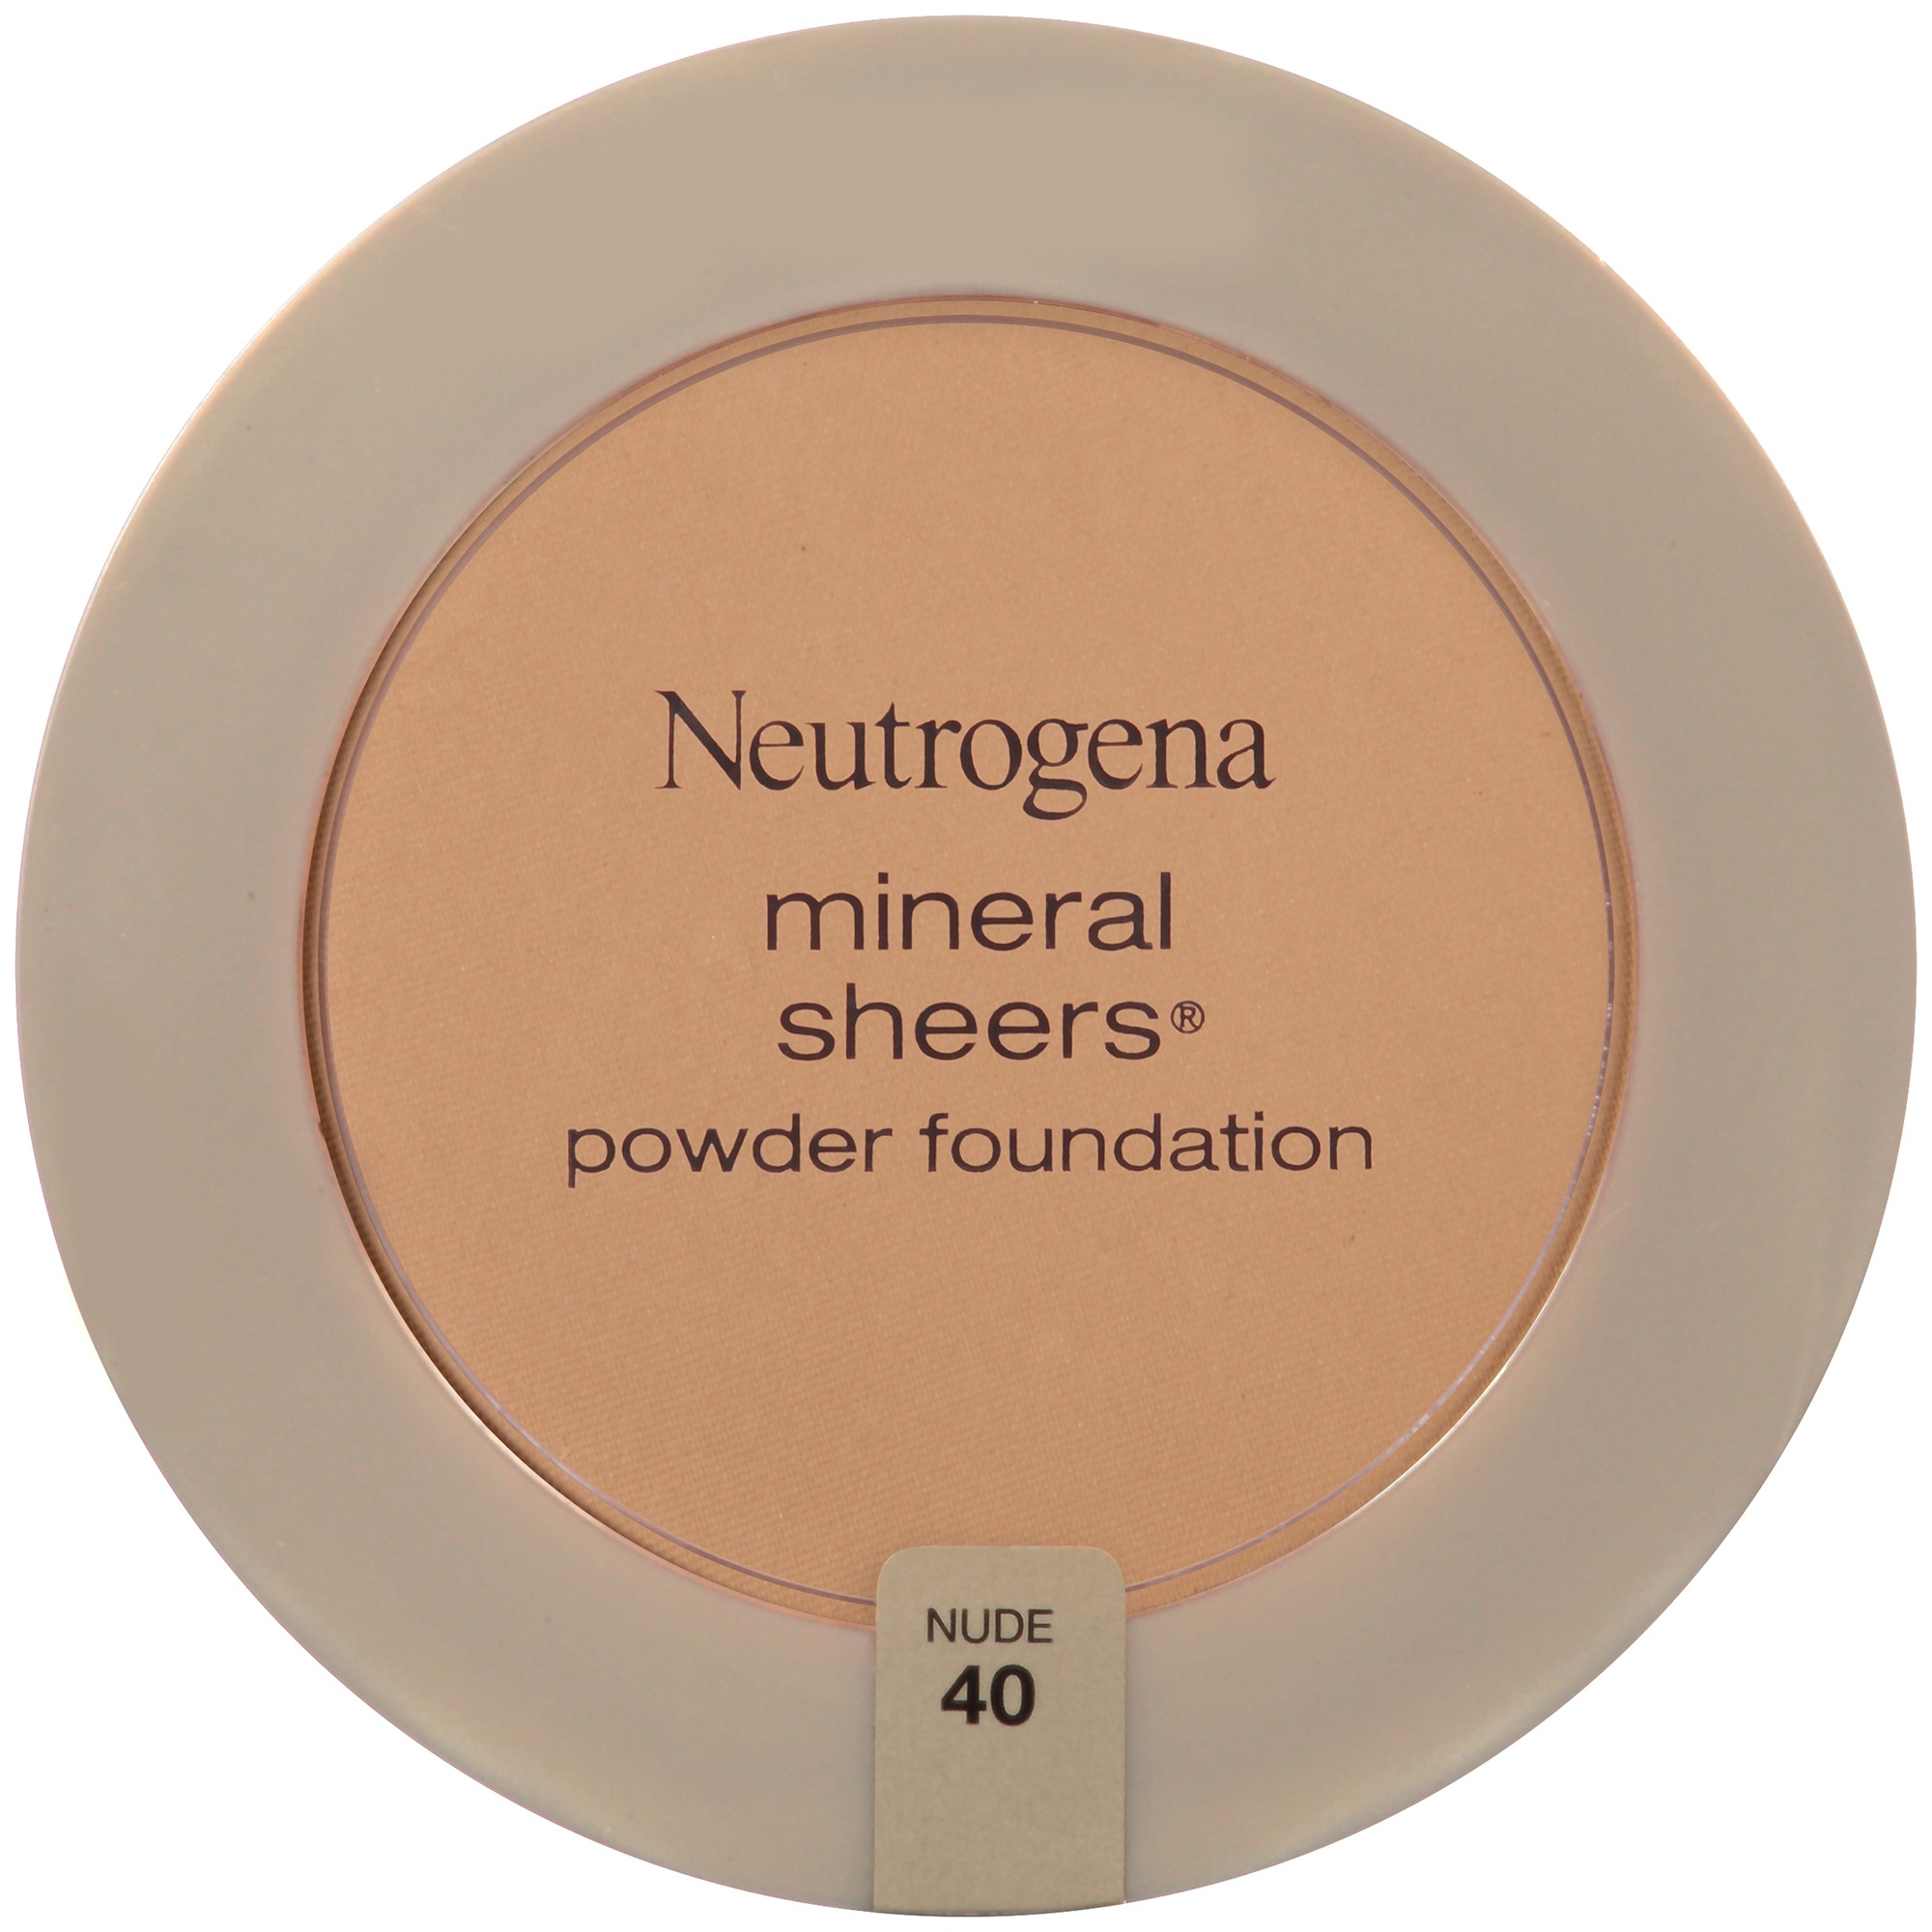 Neutrogena Mineral Sheers Compact Powder Foundation SPF 20, Nude 40, .34 Oz